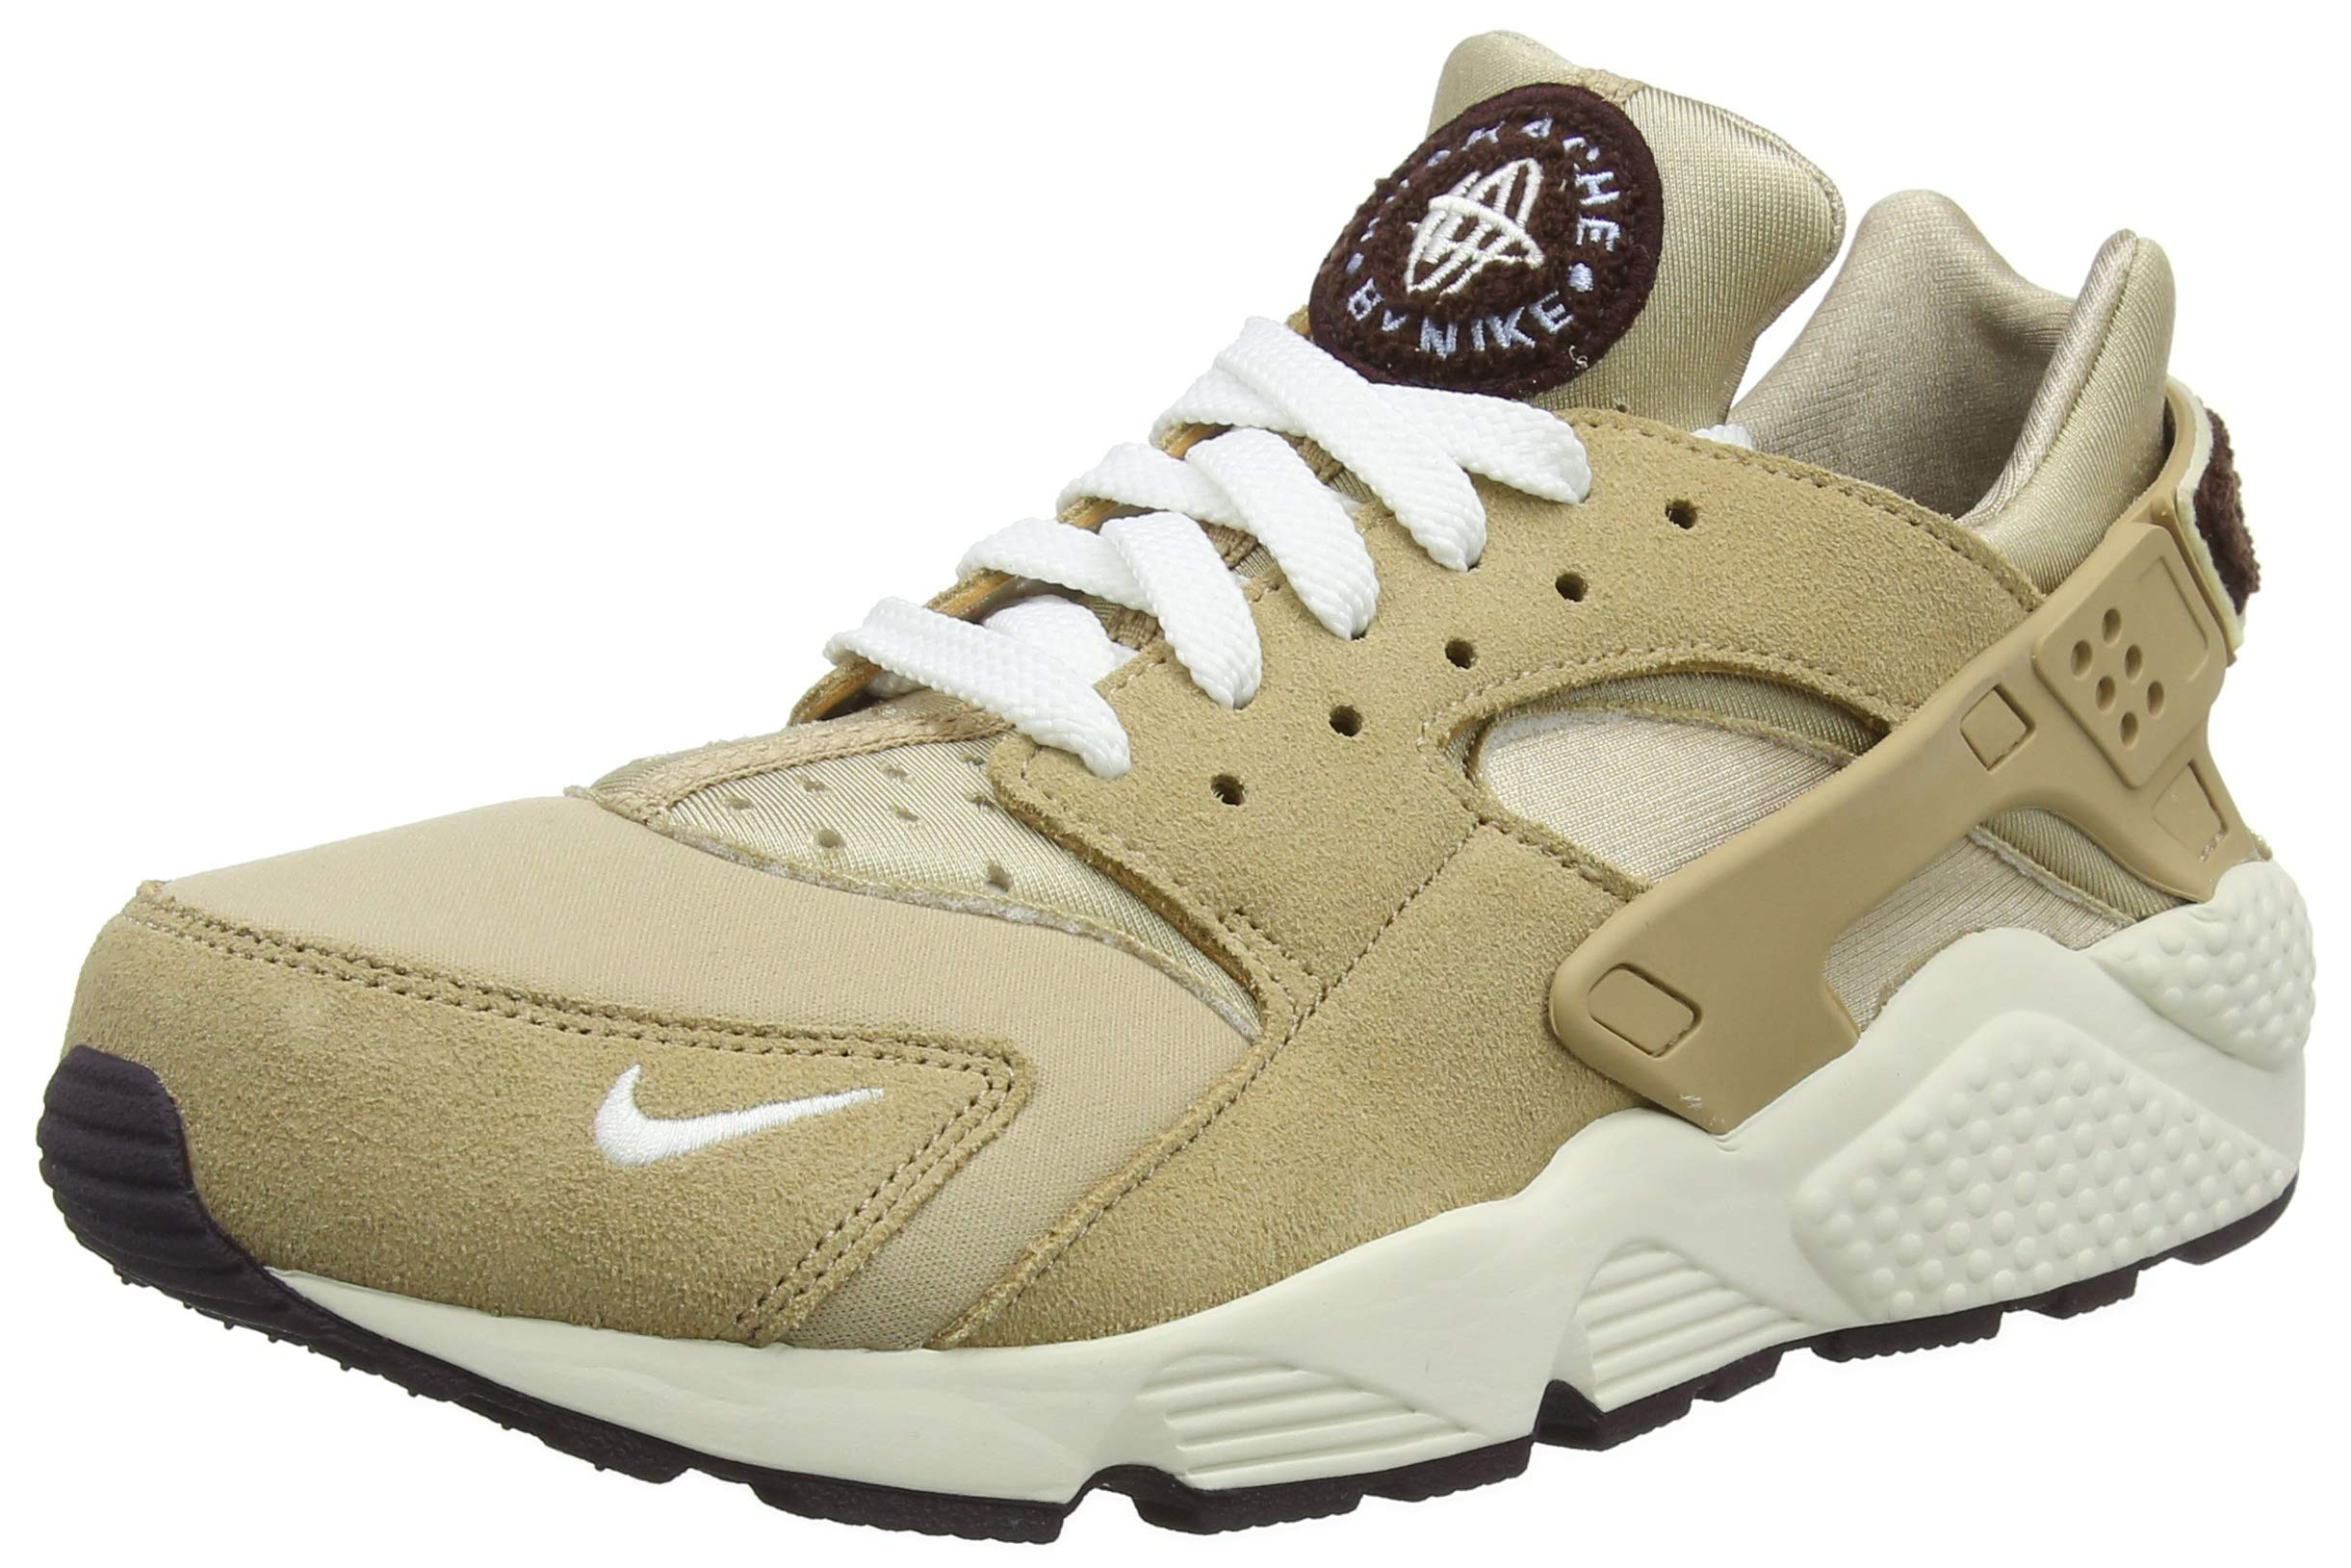 online store 51004 1fc85 Galleon - Nike Men s Air Huarache Run PRM Desert Burgundy Ash Royal  Tint Sail 704830-202 (Size  11.5)